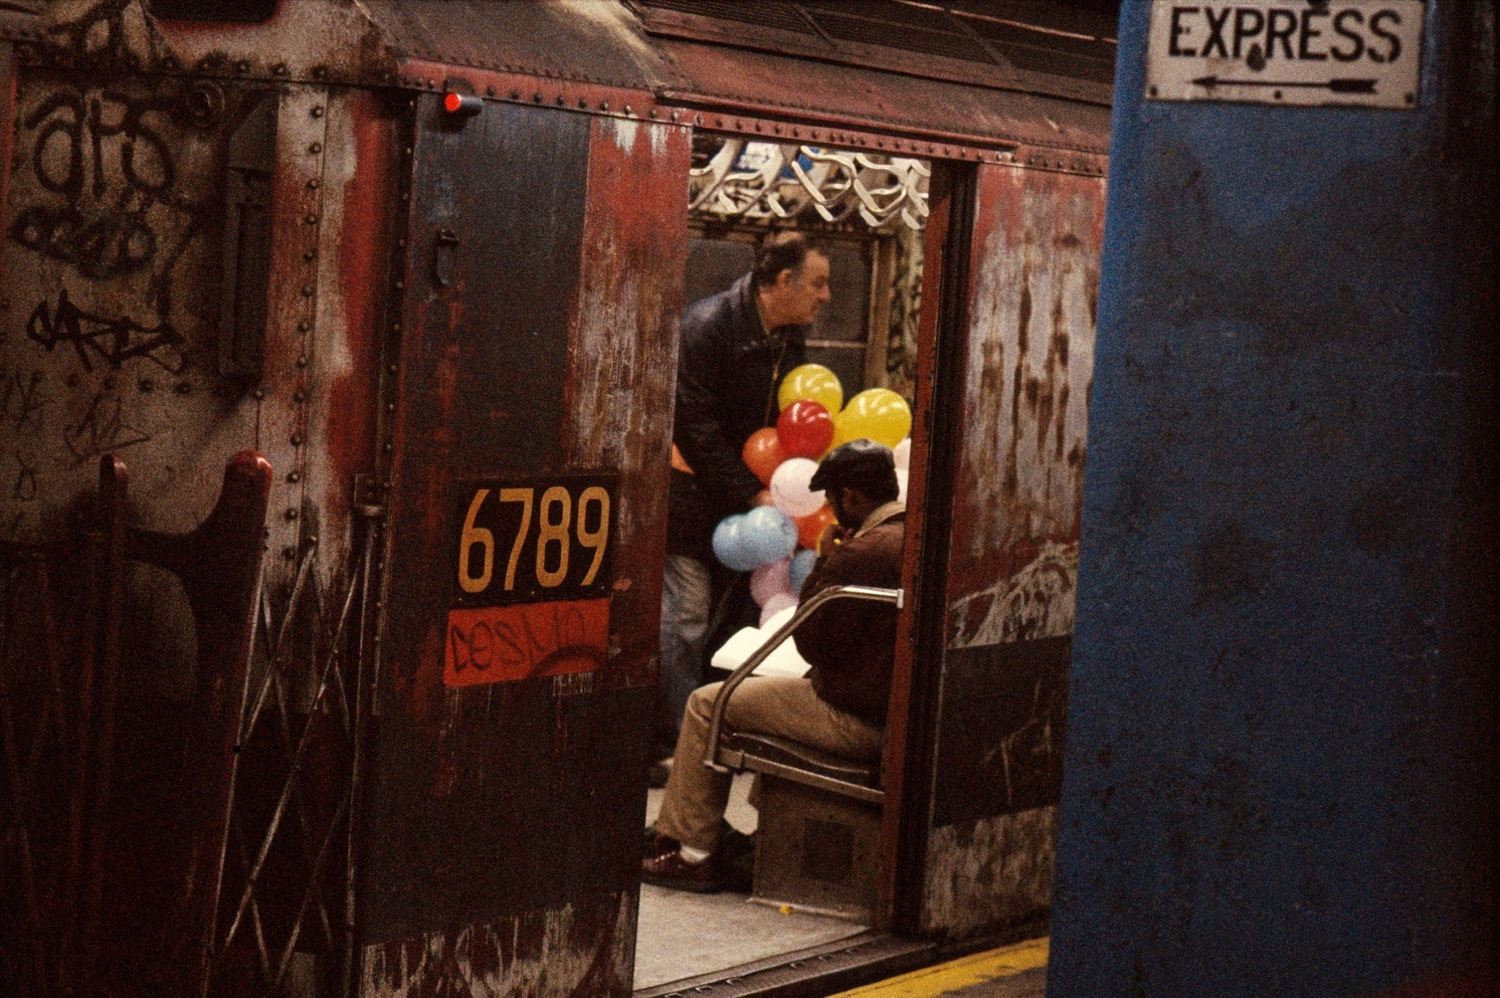 Balloons in the Subway, Frank Horvat, 1984